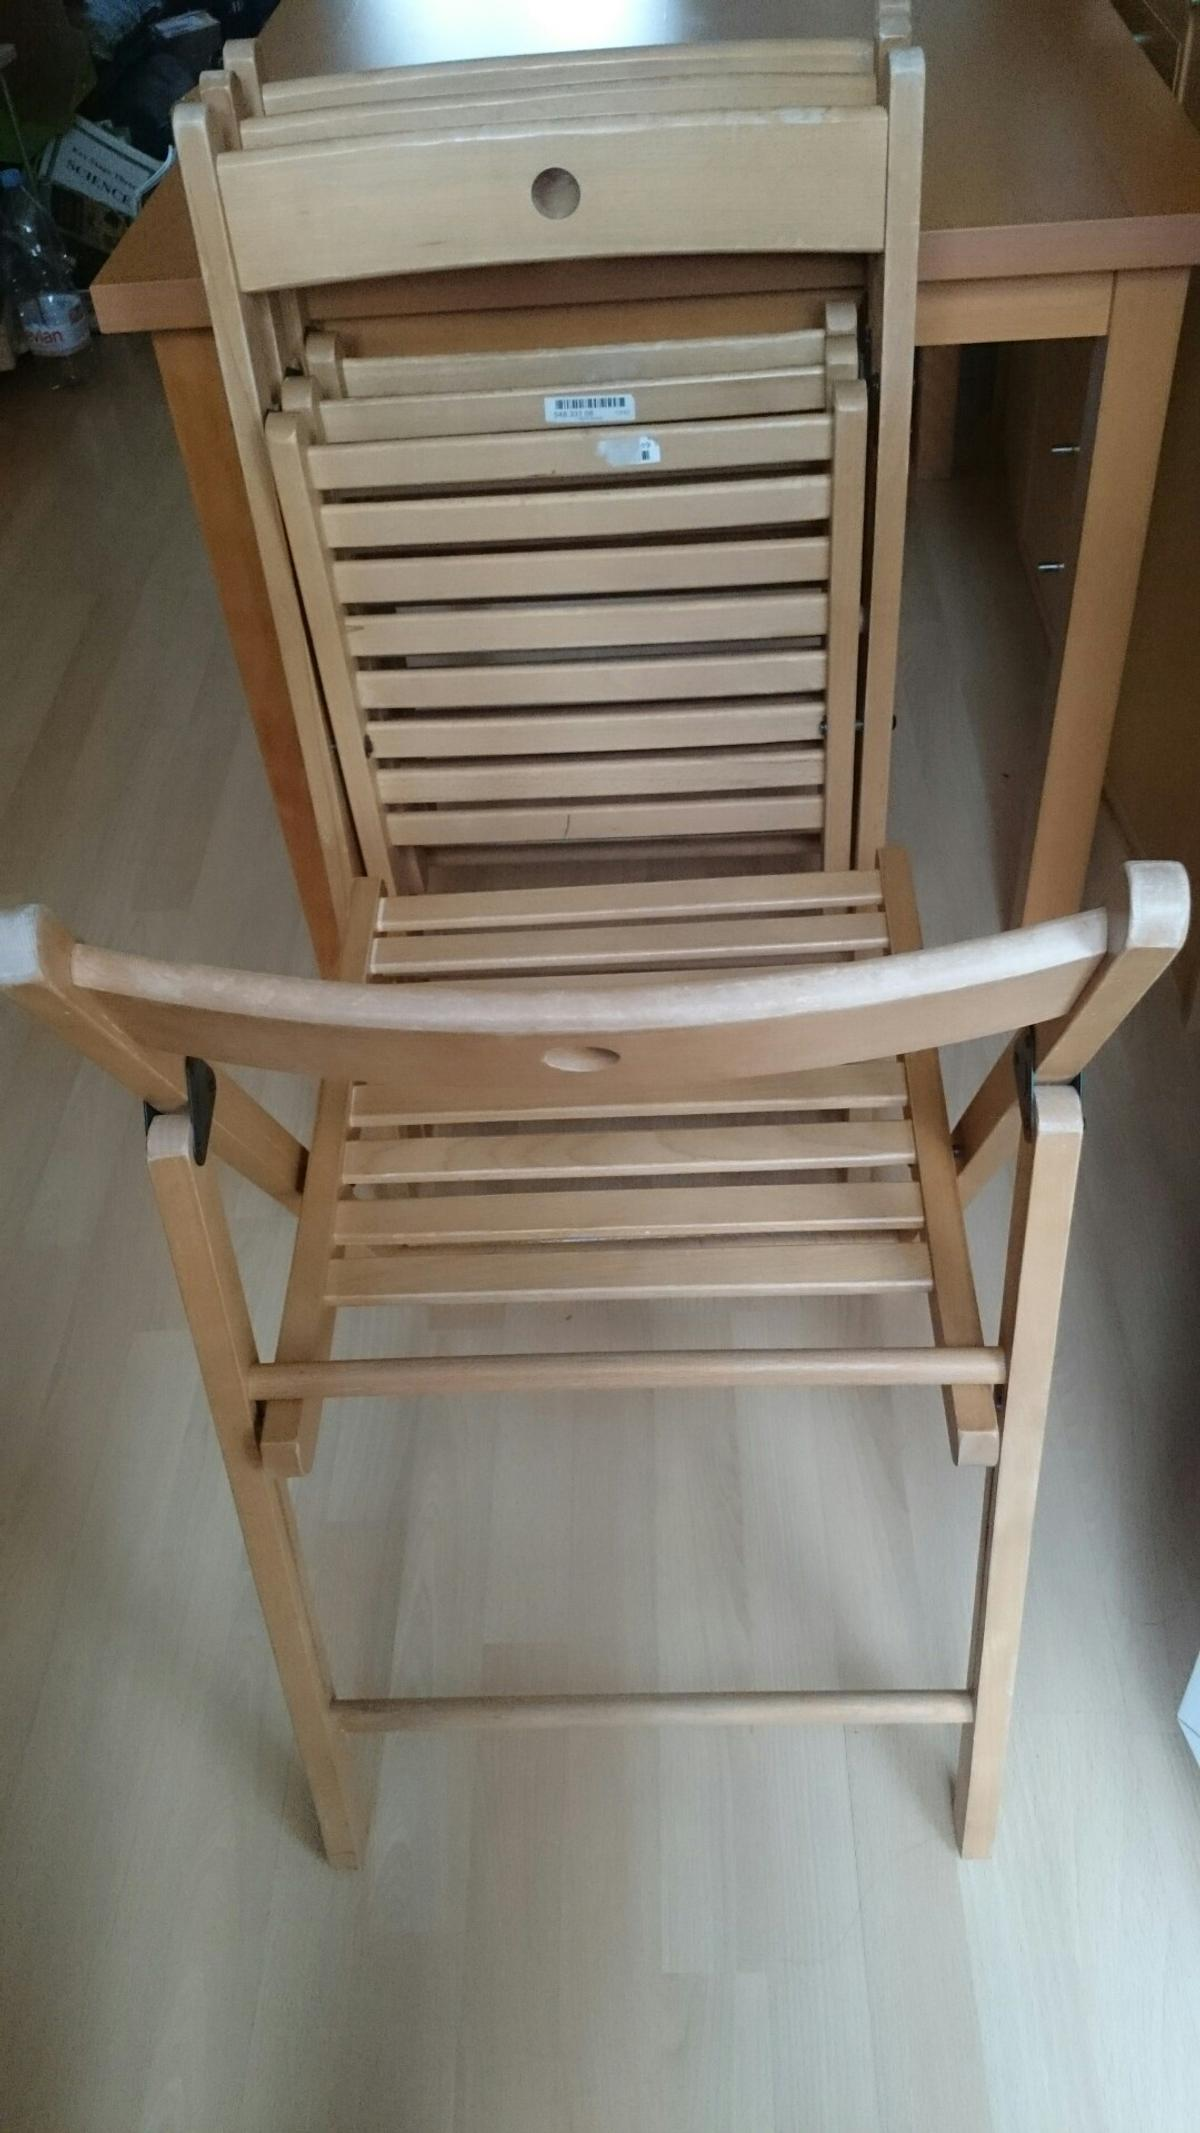 4 X Ikea Terje Strong Wood Folding Chairs In Cm7 Braintree For 24 00 For Sale Shpock